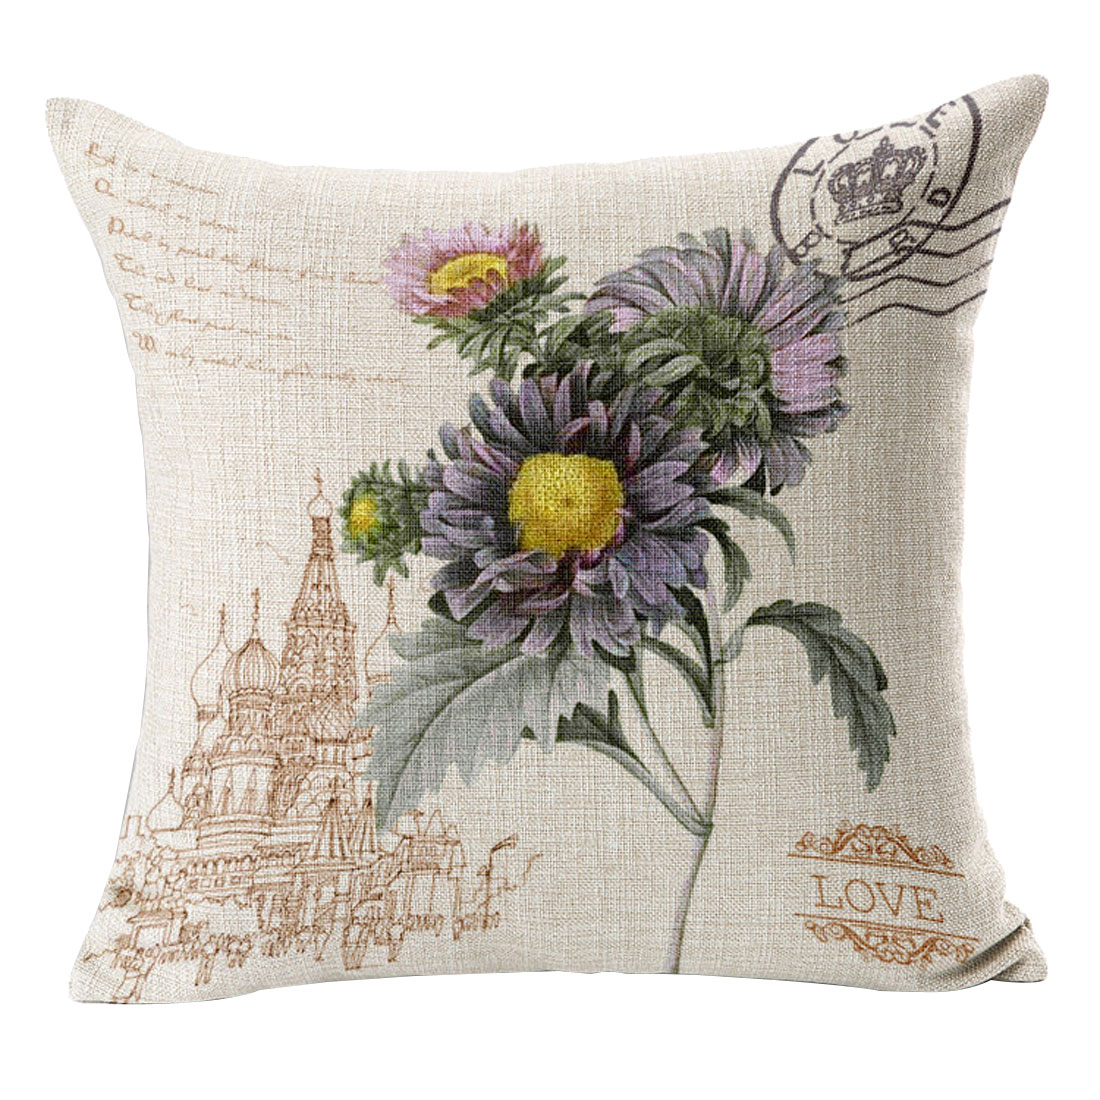 Sofa Couch Cotton Linen Chrysanthemum Pattern Waist Throw Cushion Cover Pillow Case